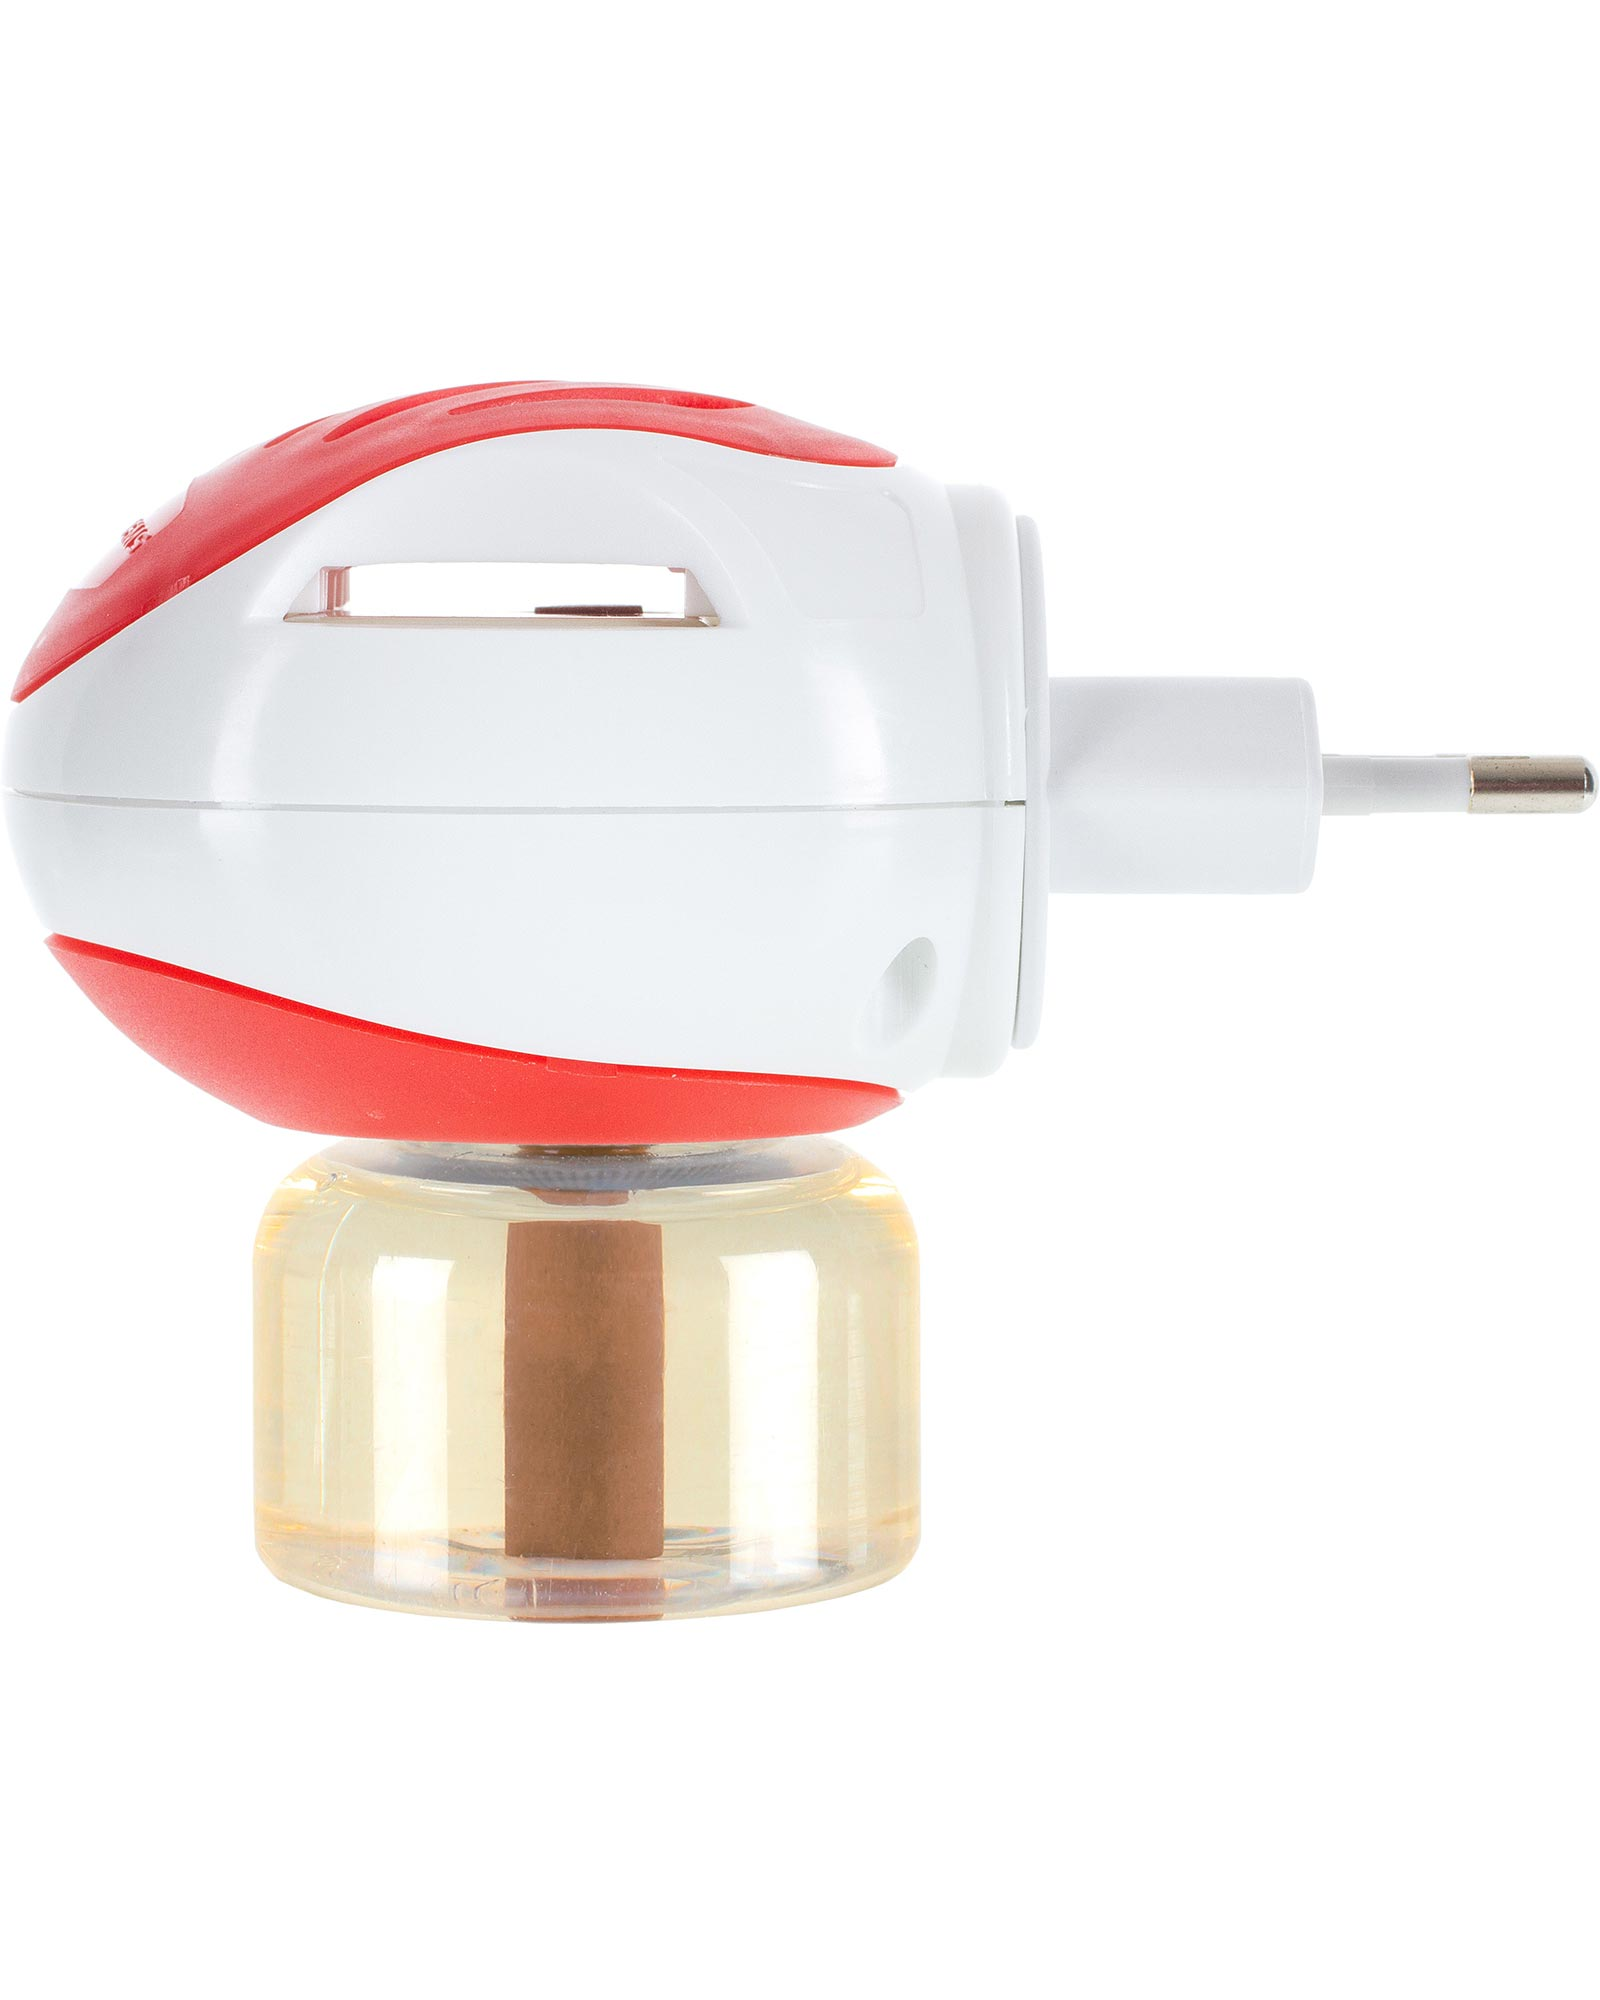 Product image of Lifesystems Plug-In Mosquito Killer